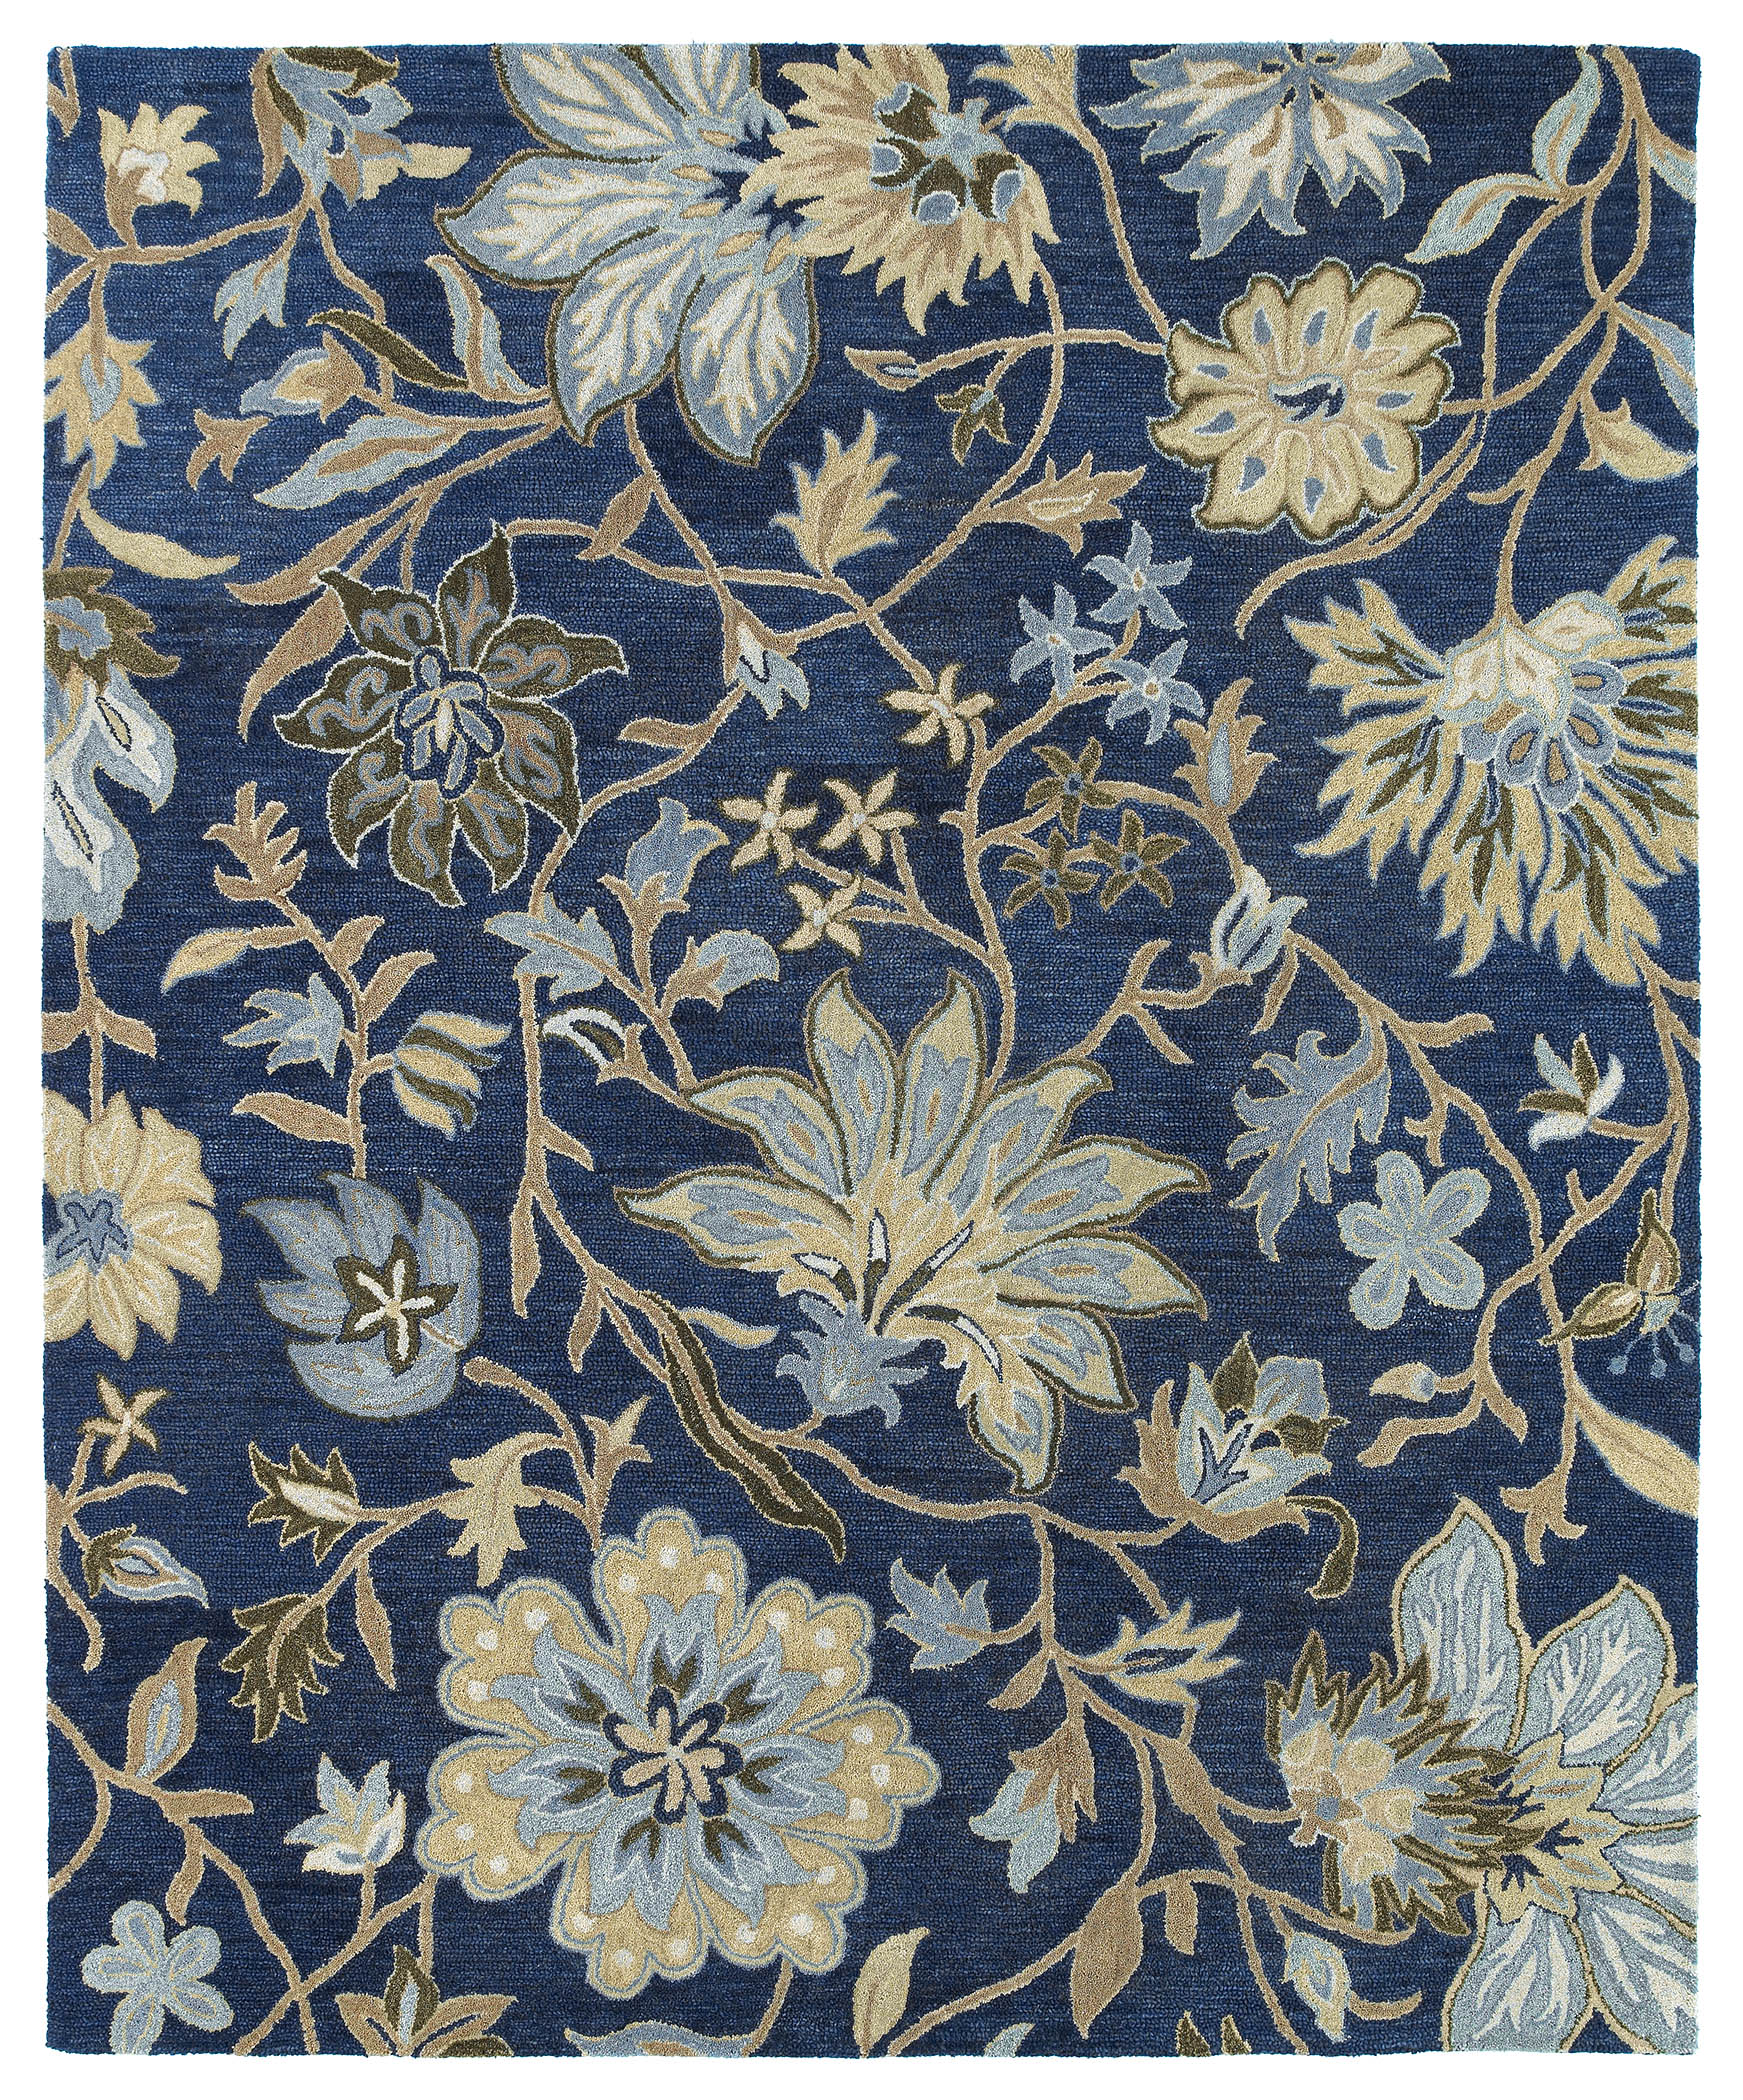 Kaleen Brooklyn Brody 5304 17 Blue Rug